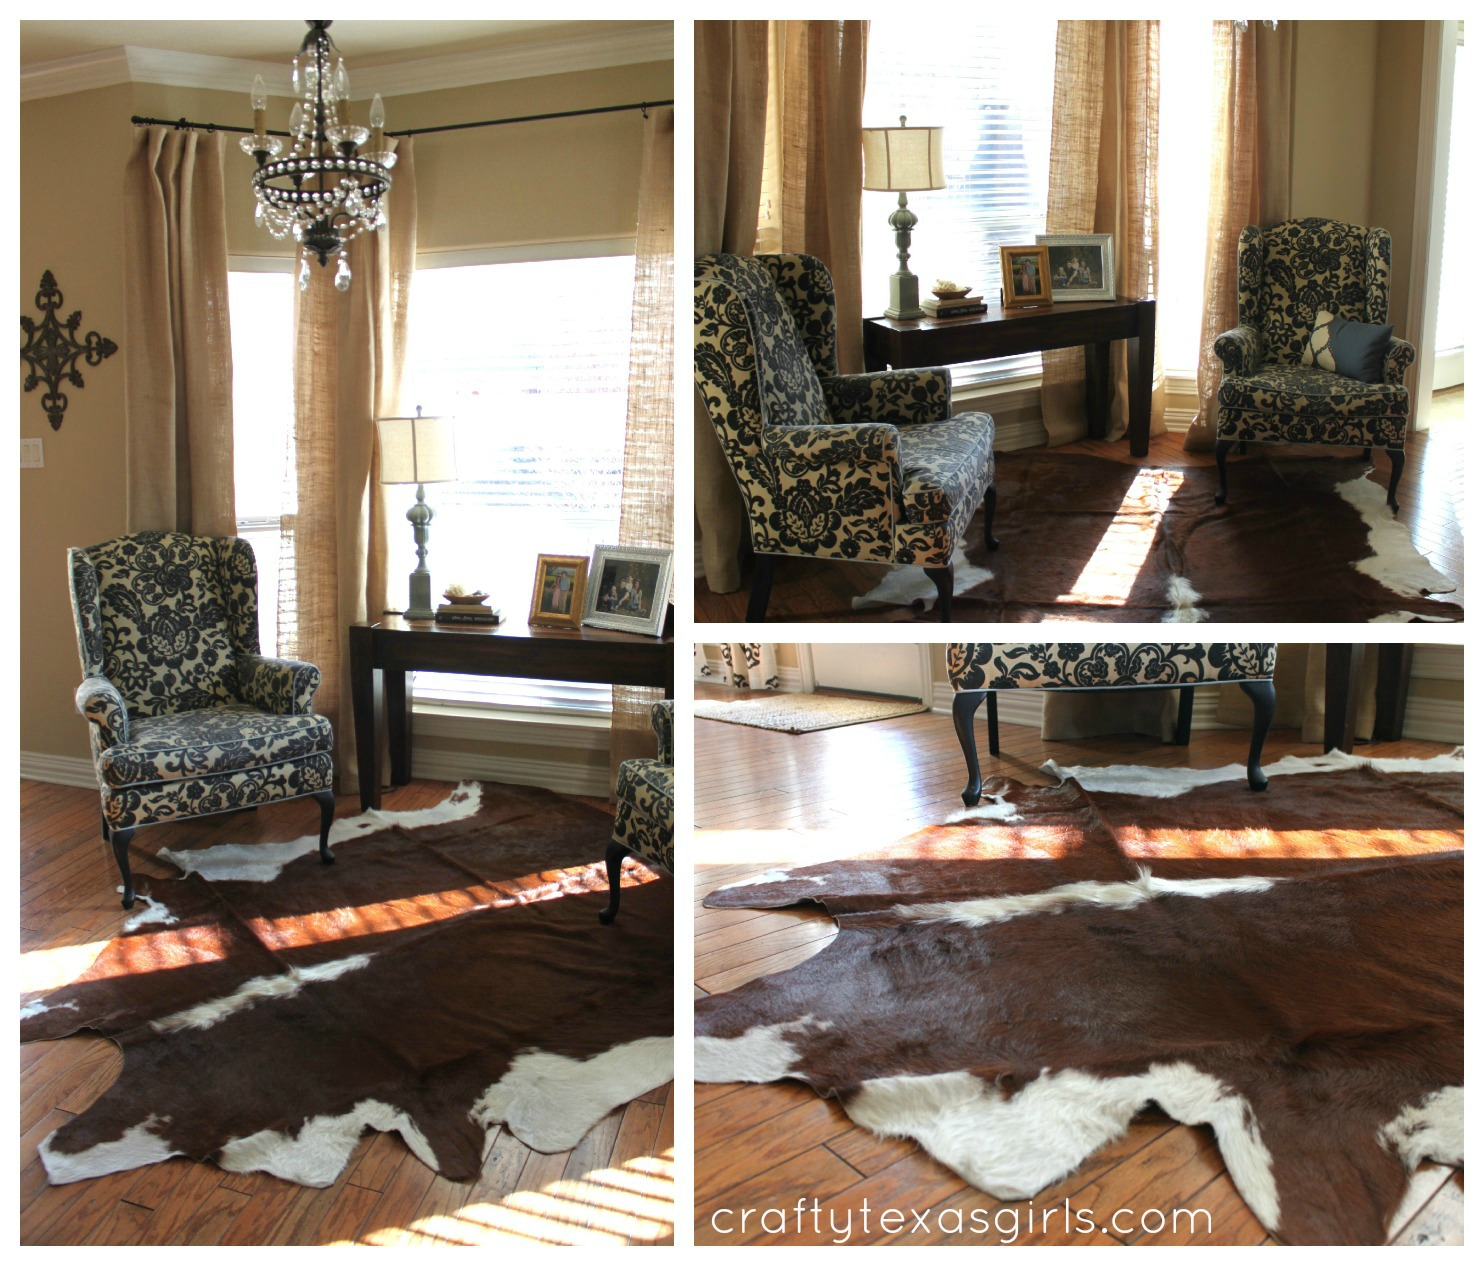 crafty texas girls home updates easy ideas for a fresh look. Black Bedroom Furniture Sets. Home Design Ideas